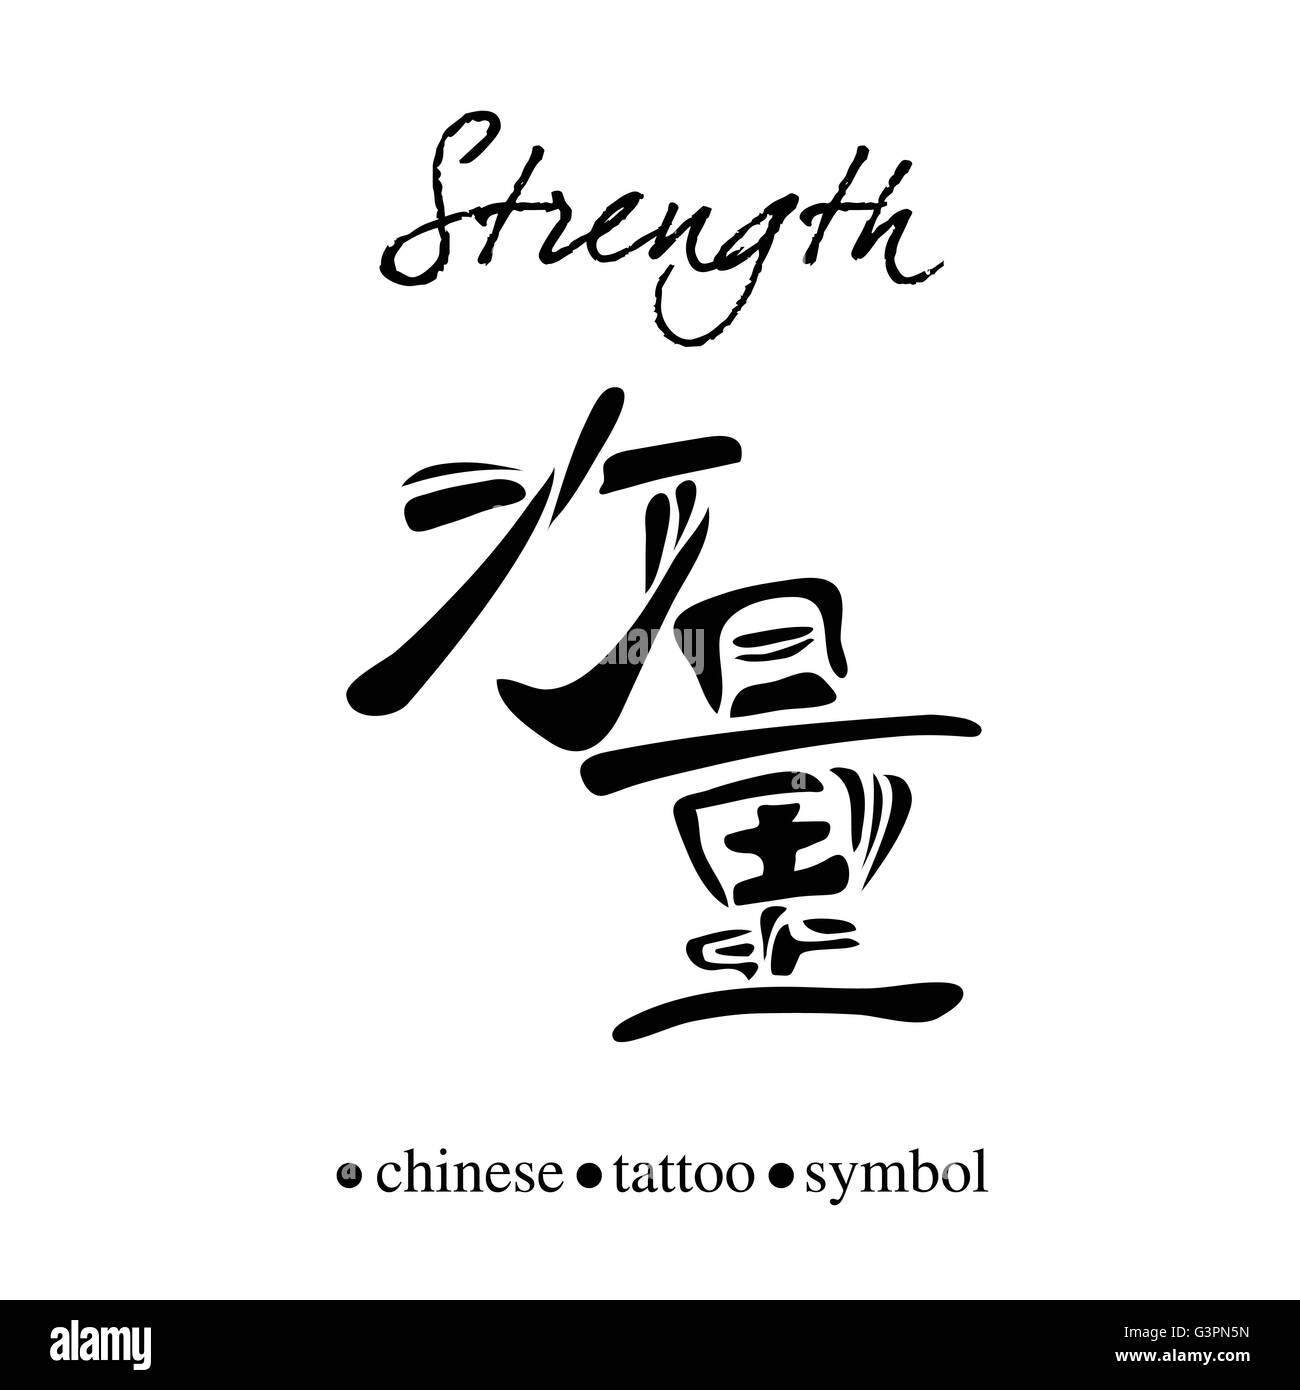 Chinese character calligraphy for strength or power stock vector chinese character calligraphy for strength or power biocorpaavc Image collections